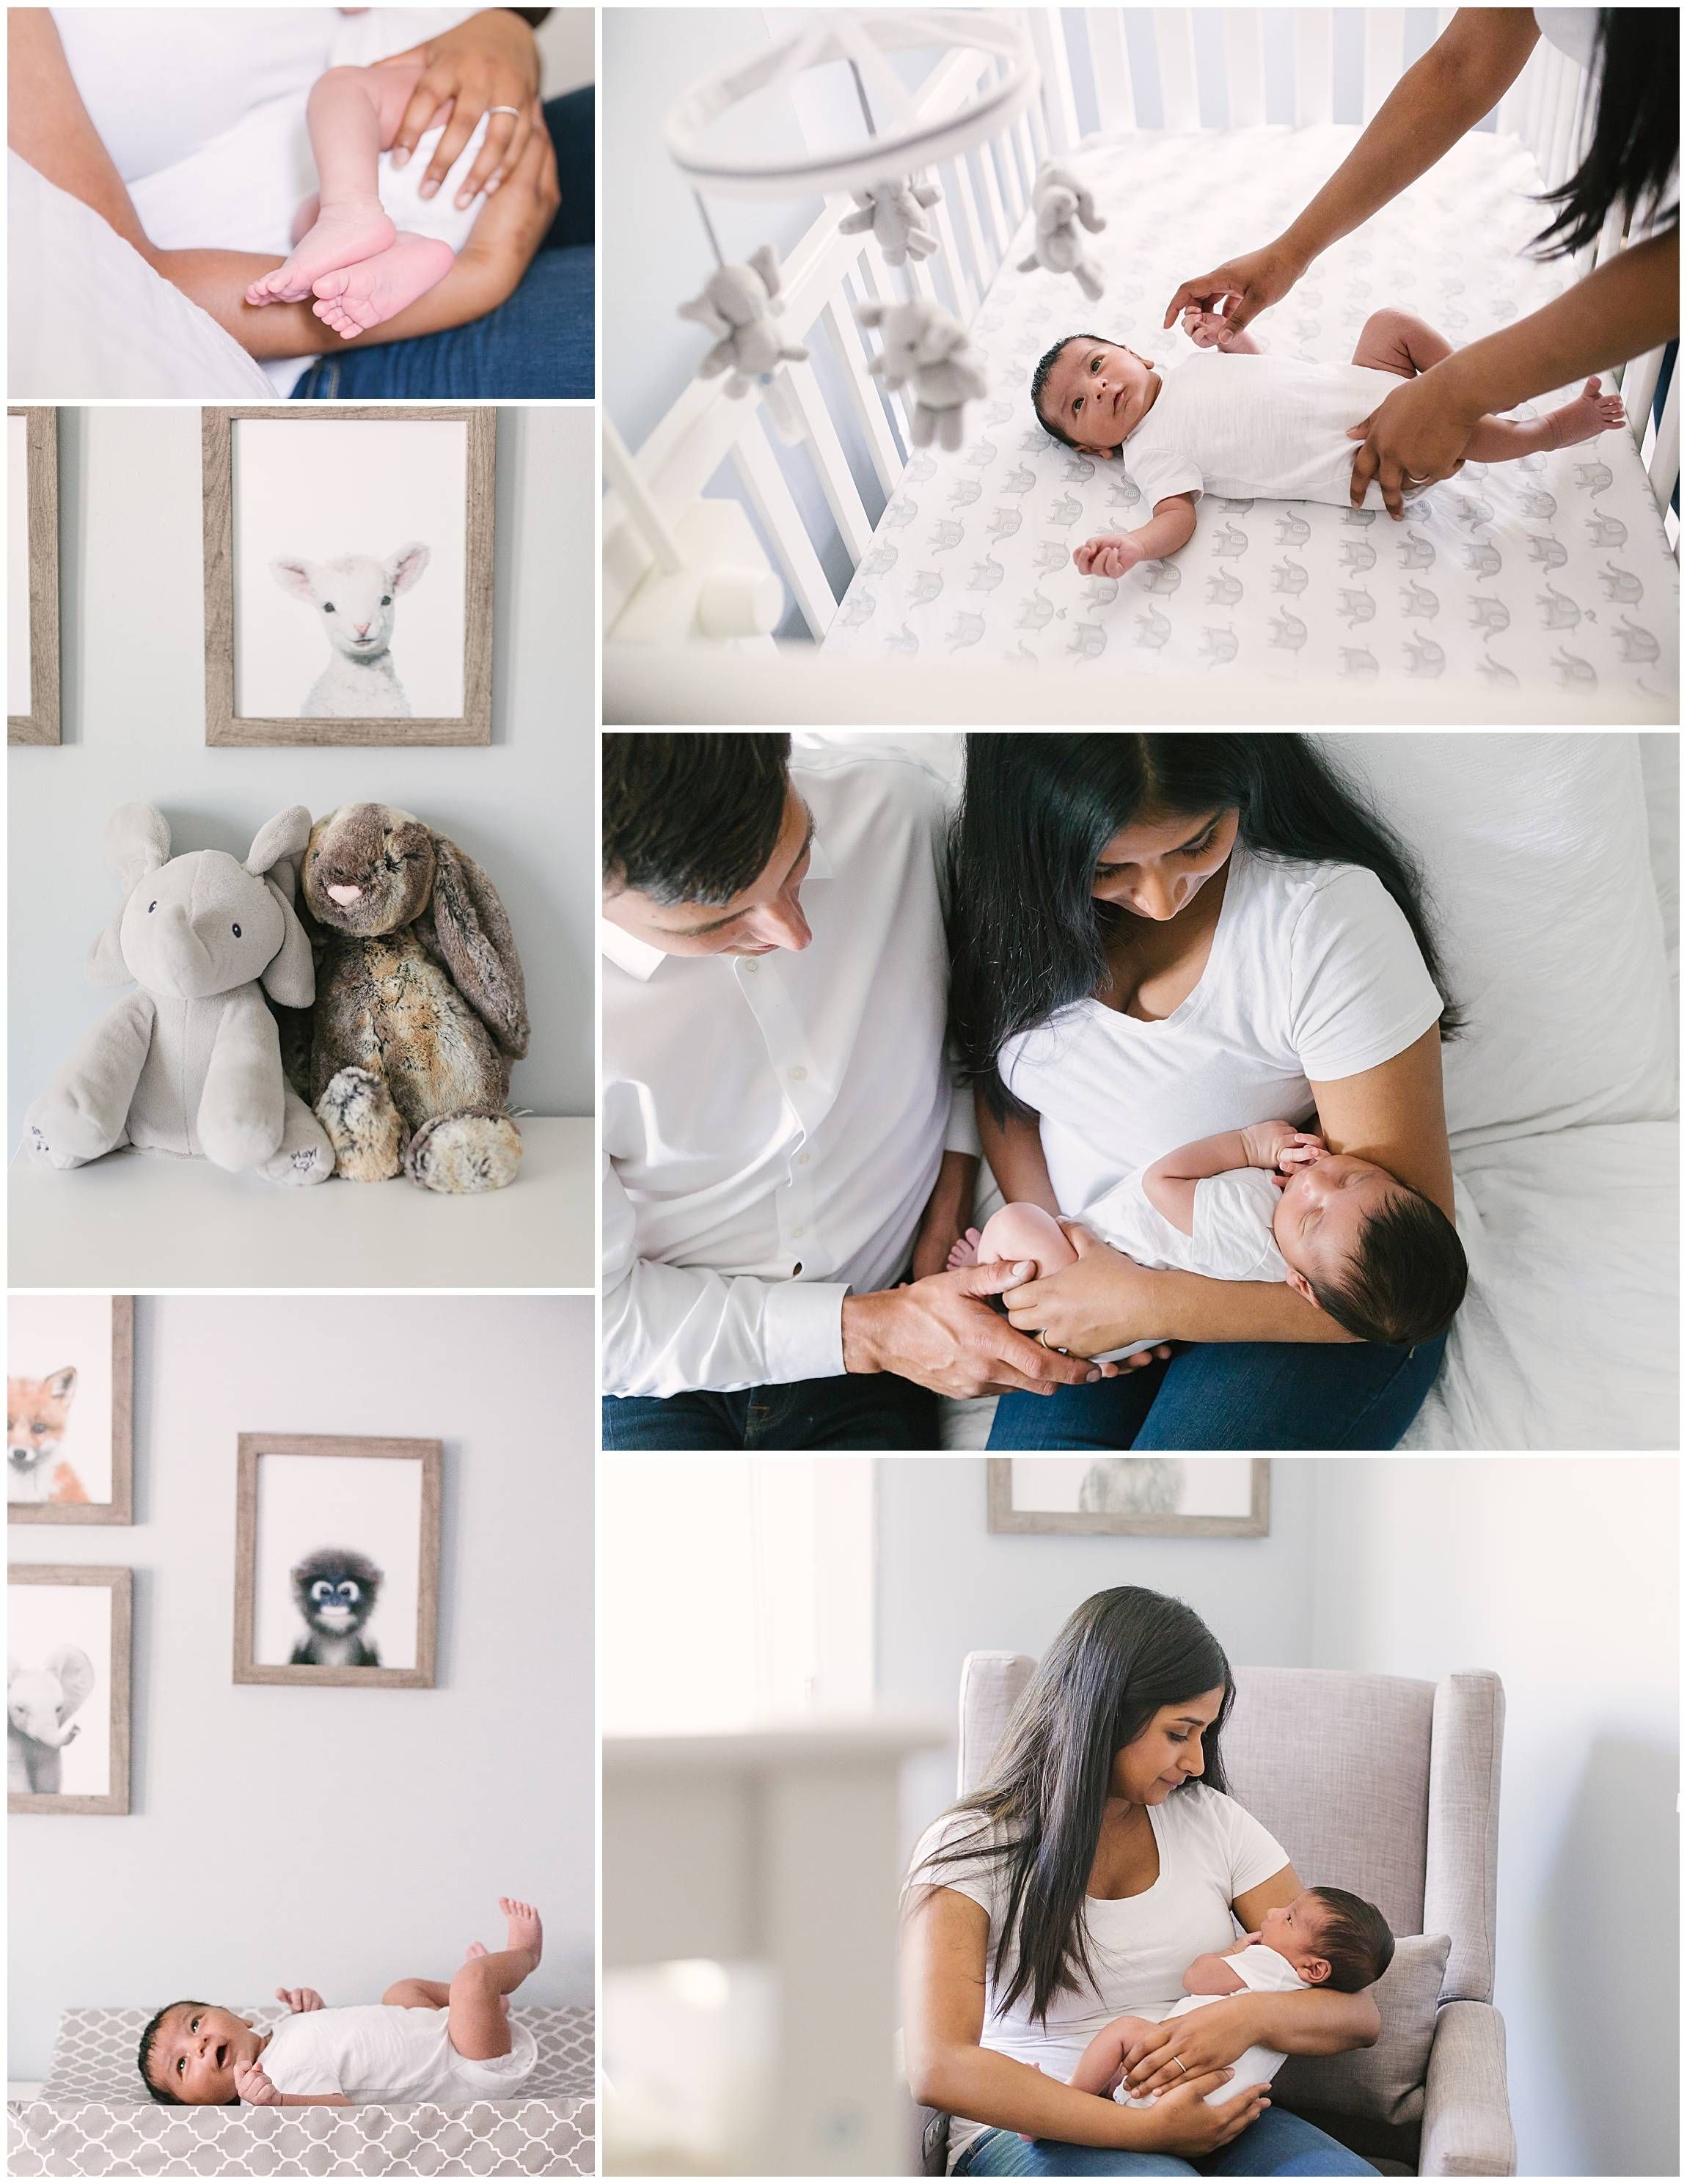 Newborn lifestyle photography in home baby photography session bright and airy natural clean documentary toronto photographer kira noel